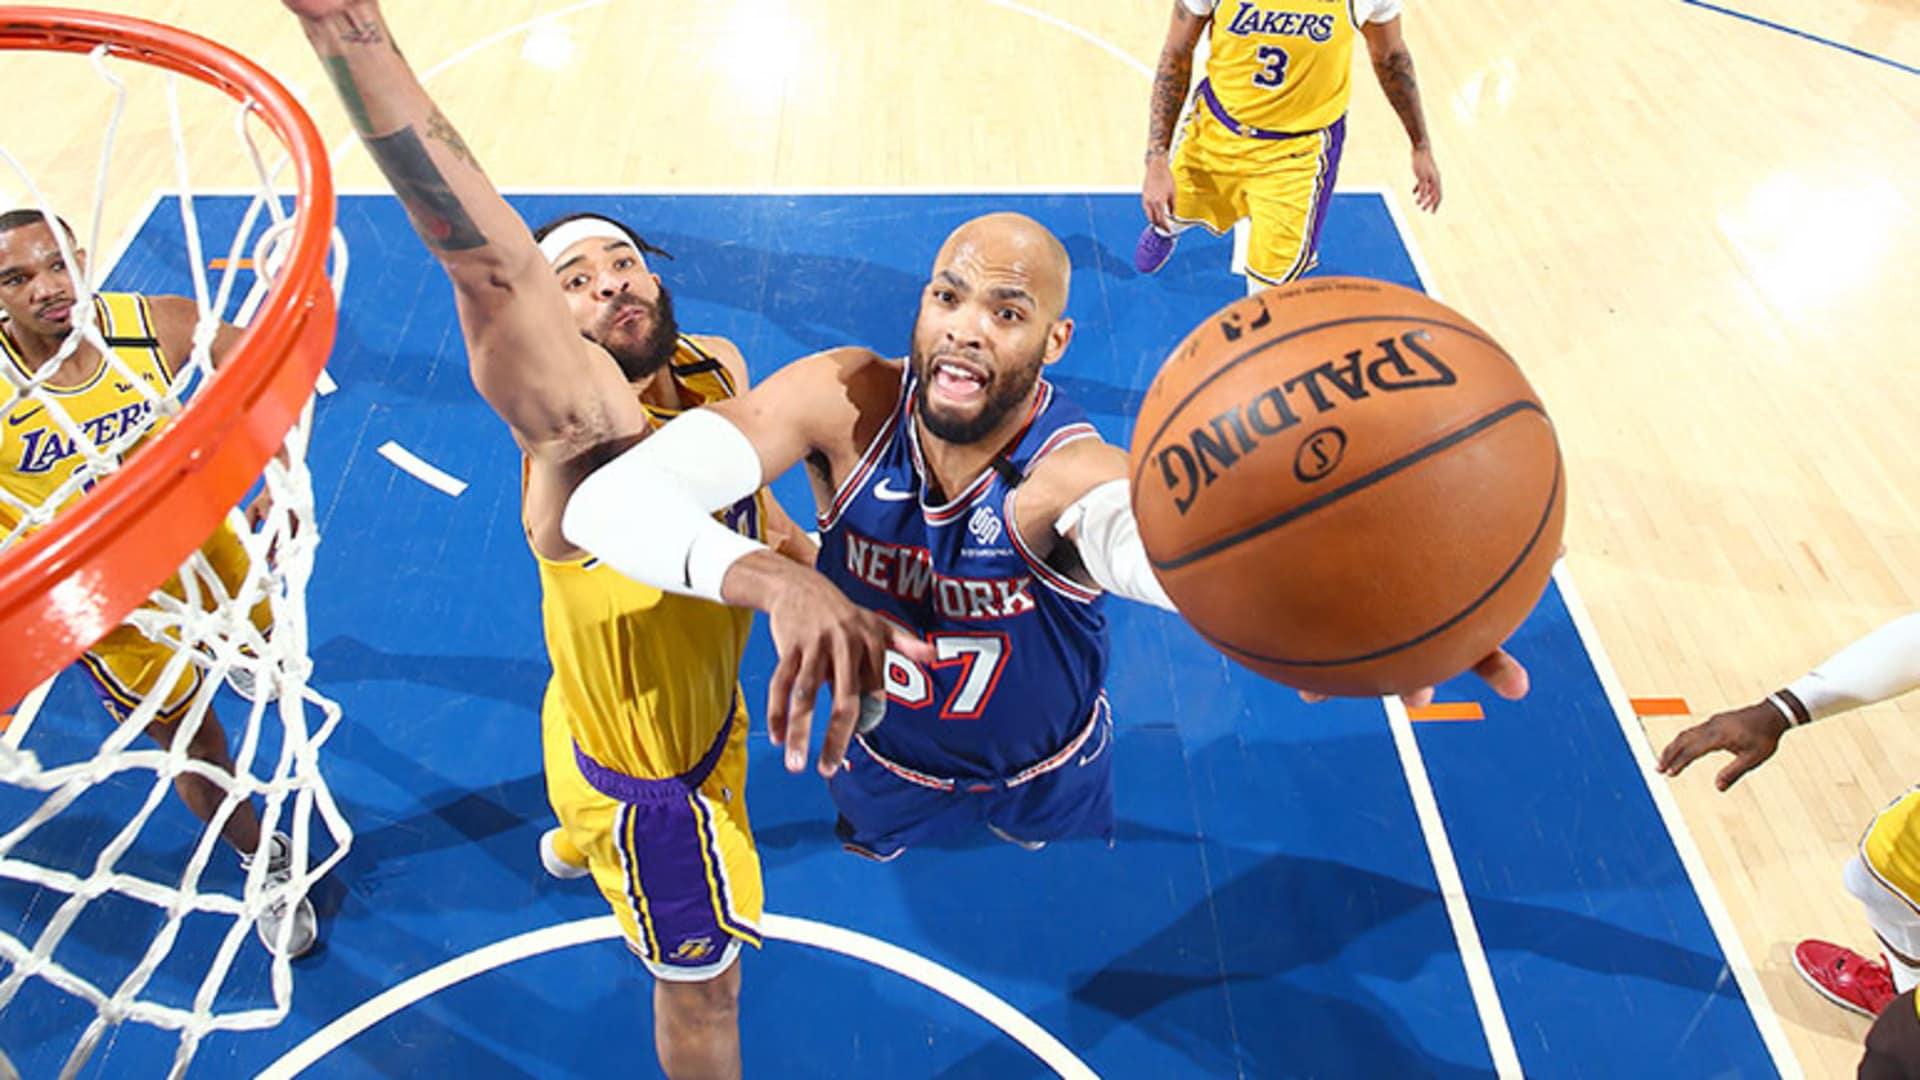 Highlights: Taj Gibson (12 Points) | Knicks vs. Lakers